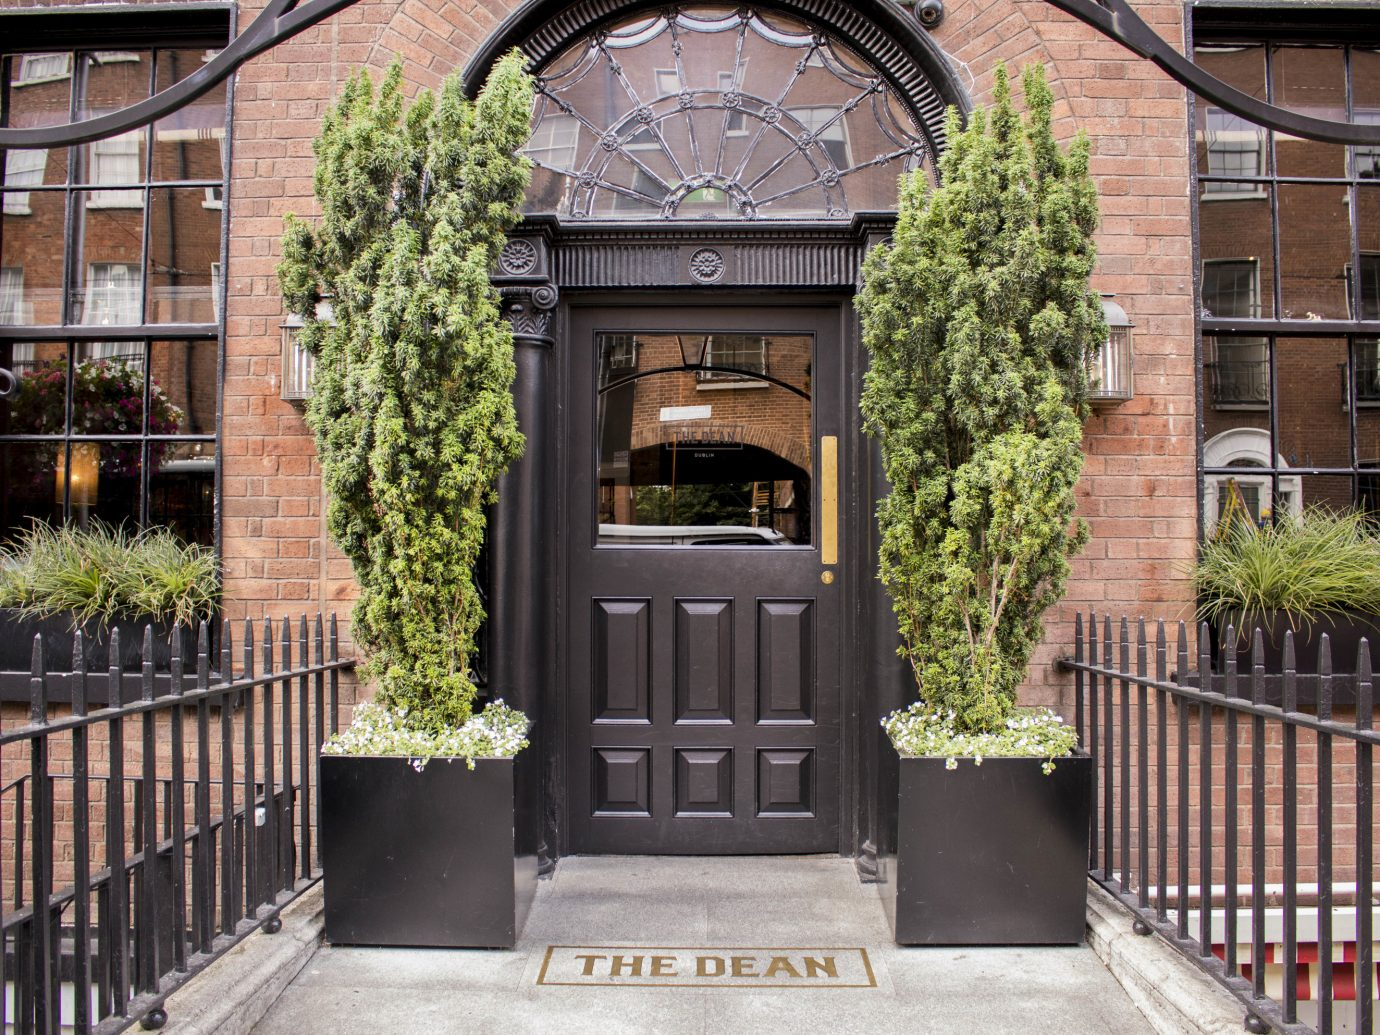 Dublin Hotels Ireland outdoor building iron gate door facade house Courtyard Garden